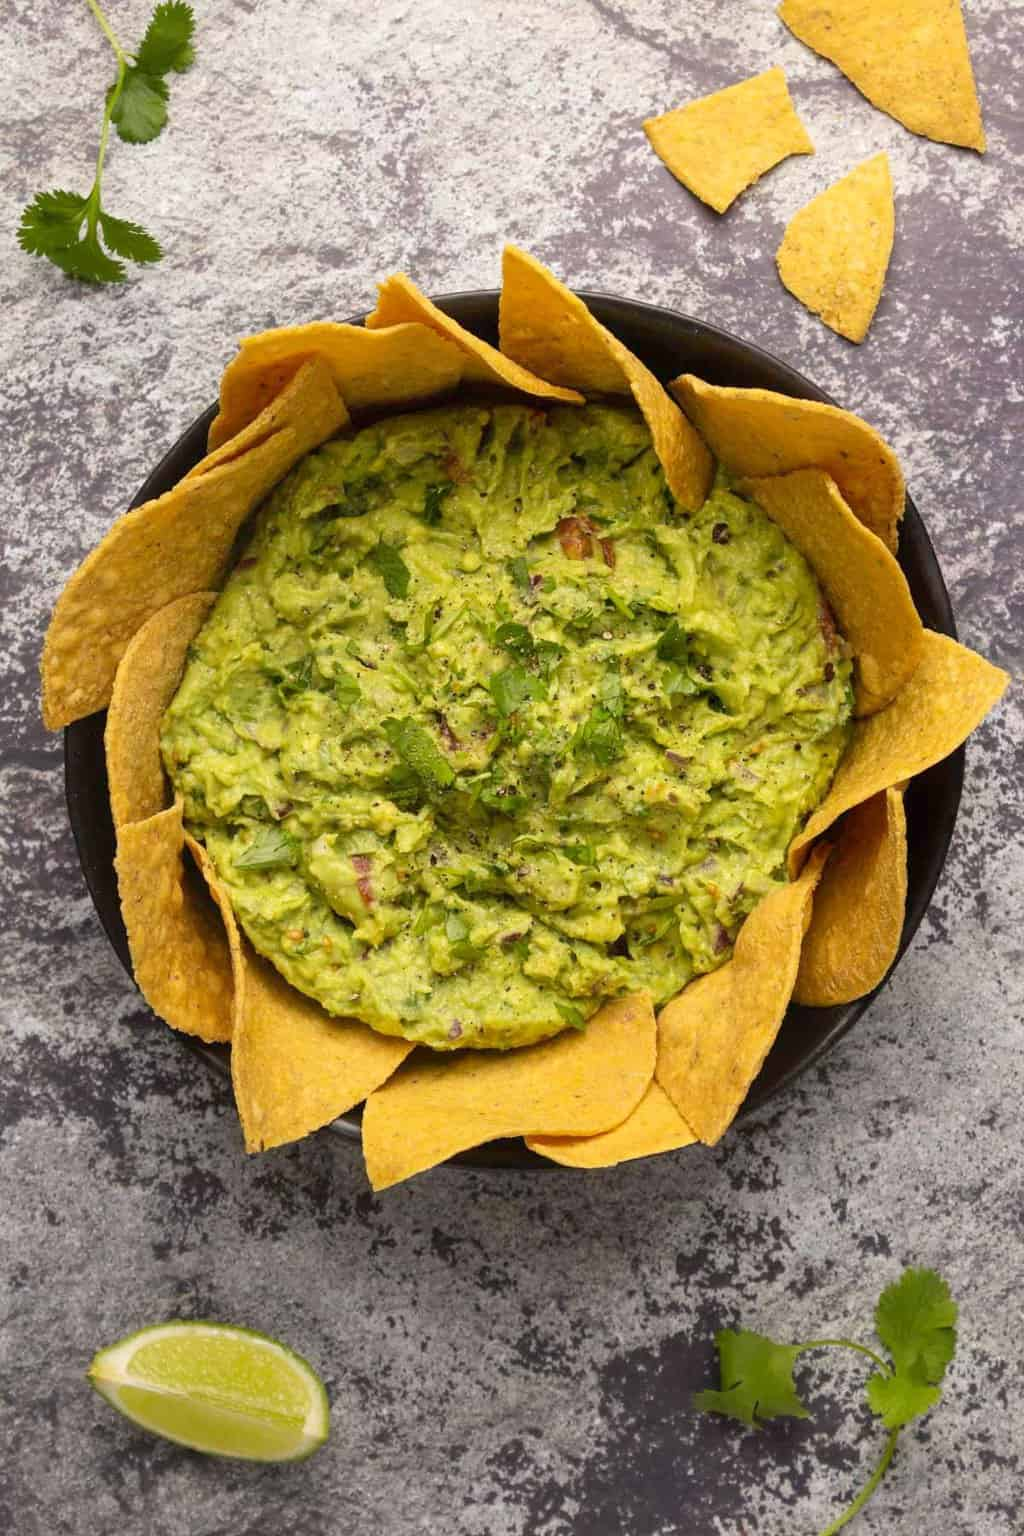 Vegan guacamole surrounded by tortilla chips in a black bowl.